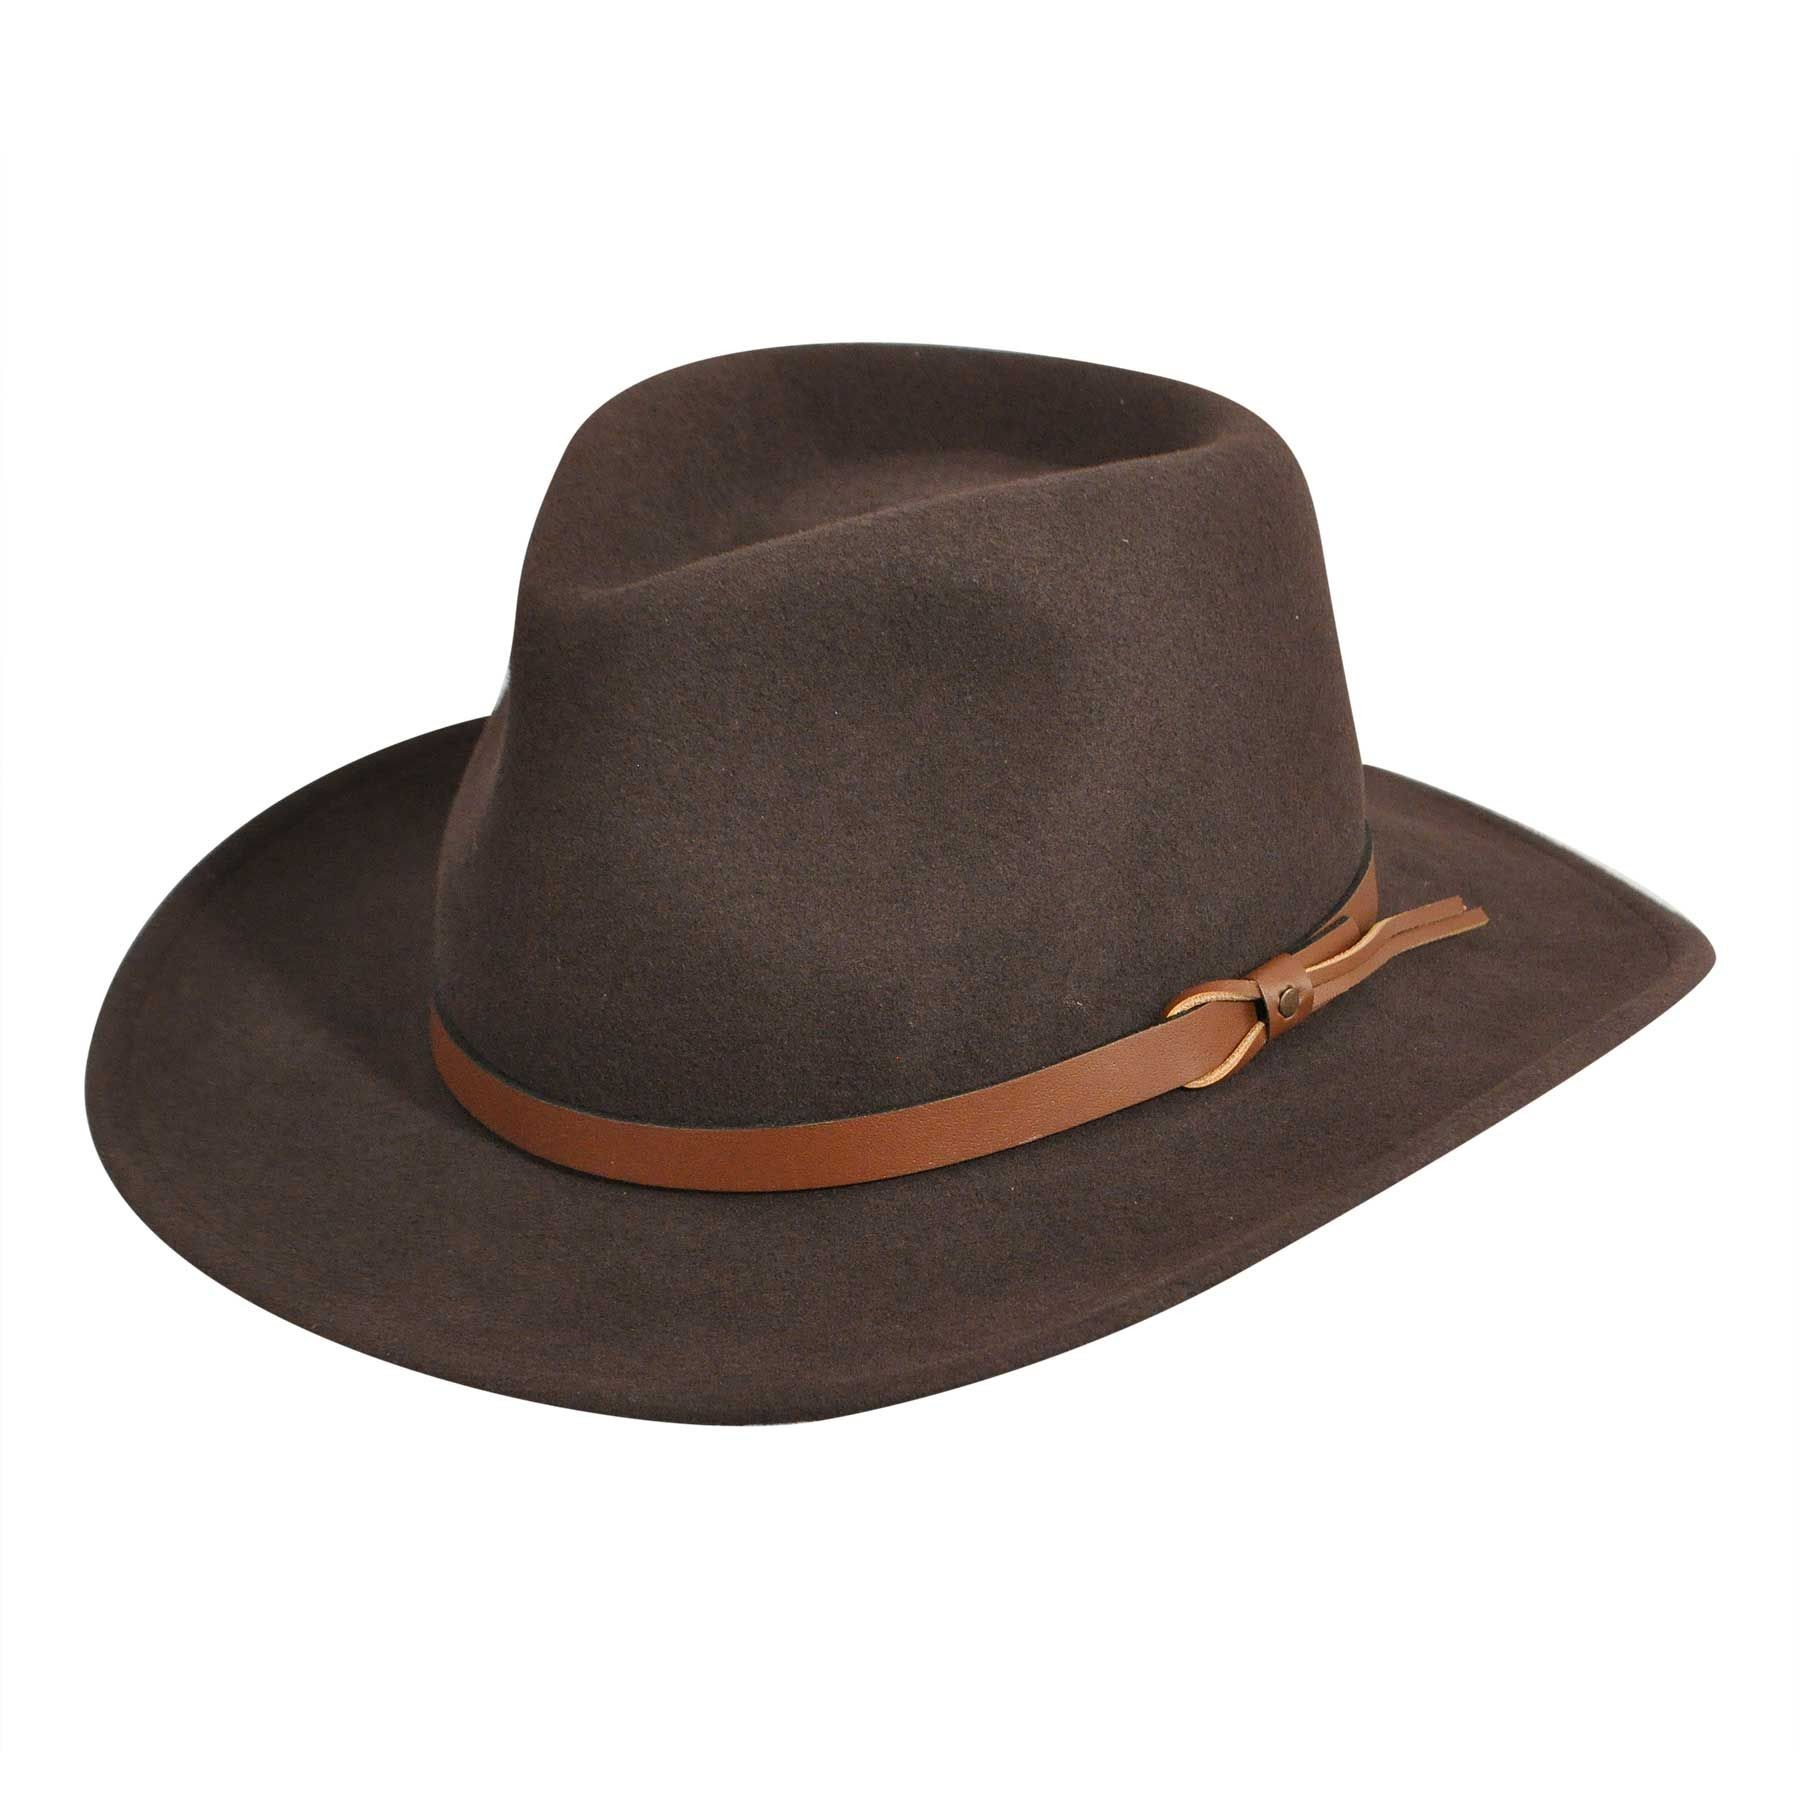 Pantropic Dakota Litefelt® Outback Hat 2cd322d2a03d